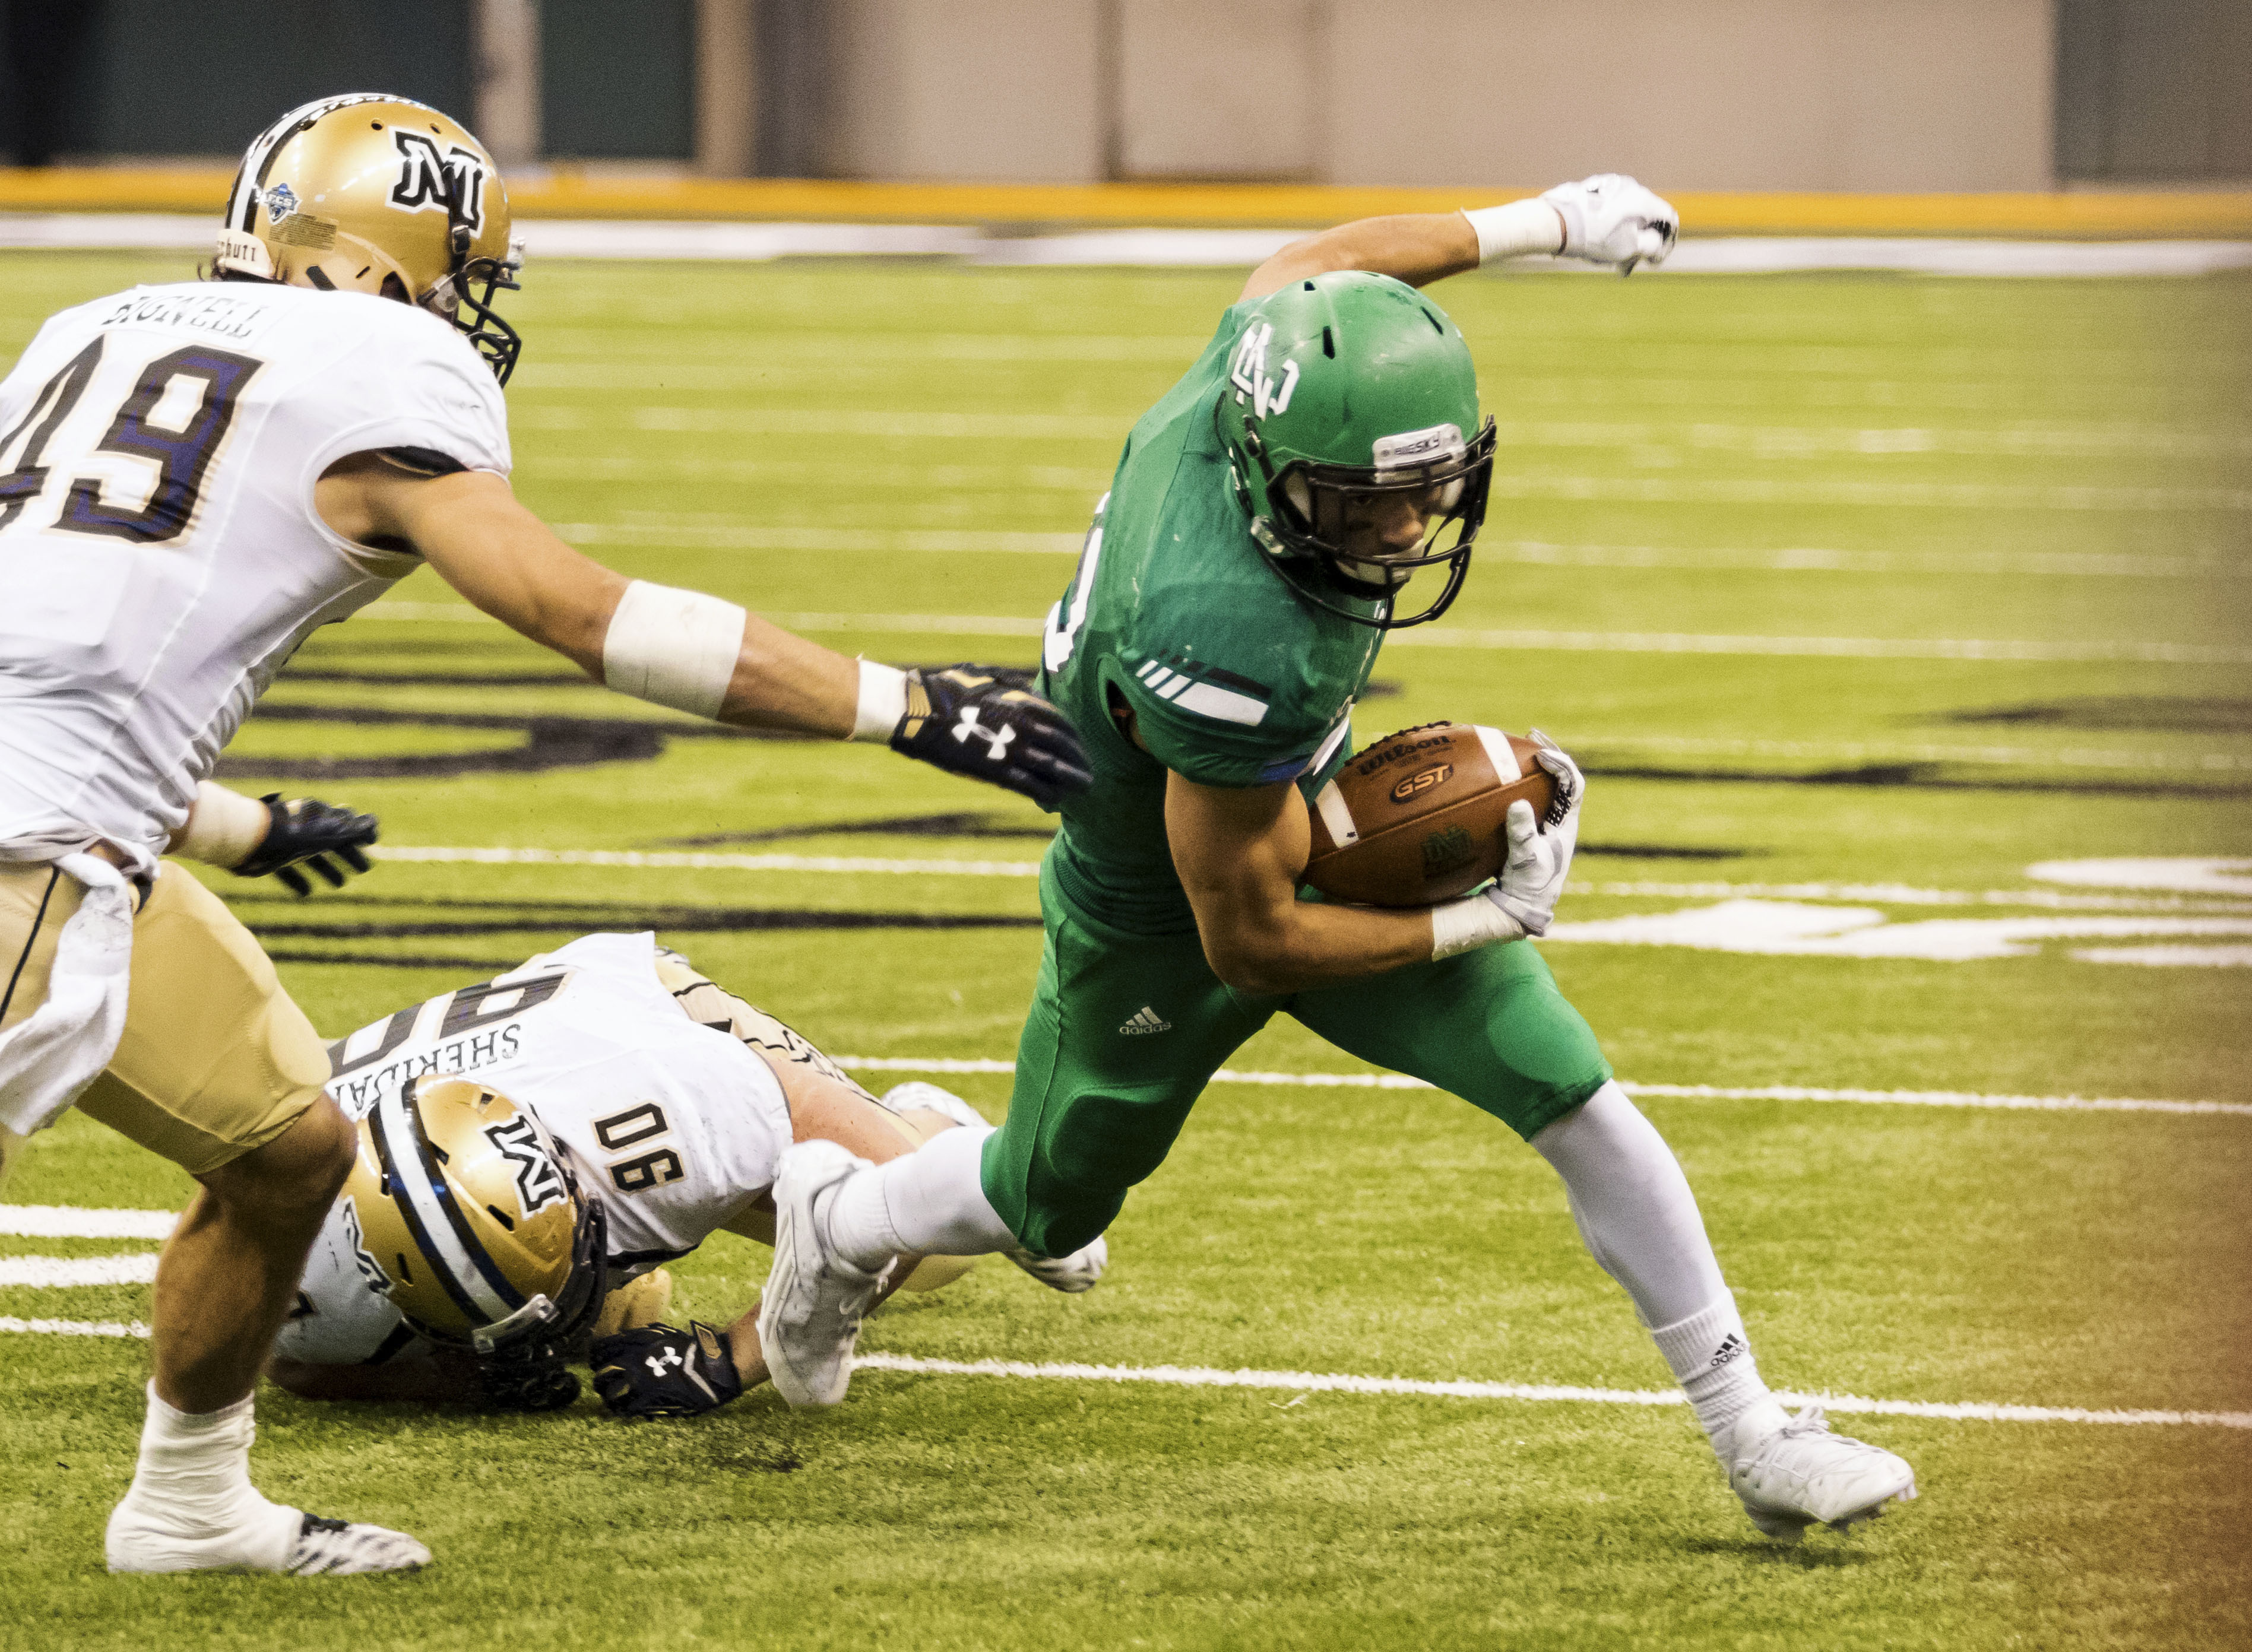 In this Oct. 31, 2015 photo, provided by University of North Dakota Athletics, North Dakota freshman running back John Santiago rushes against Montana State during an NCAA college football game in Grand Forks, N.D. Santiago is the fifth leading rusher in